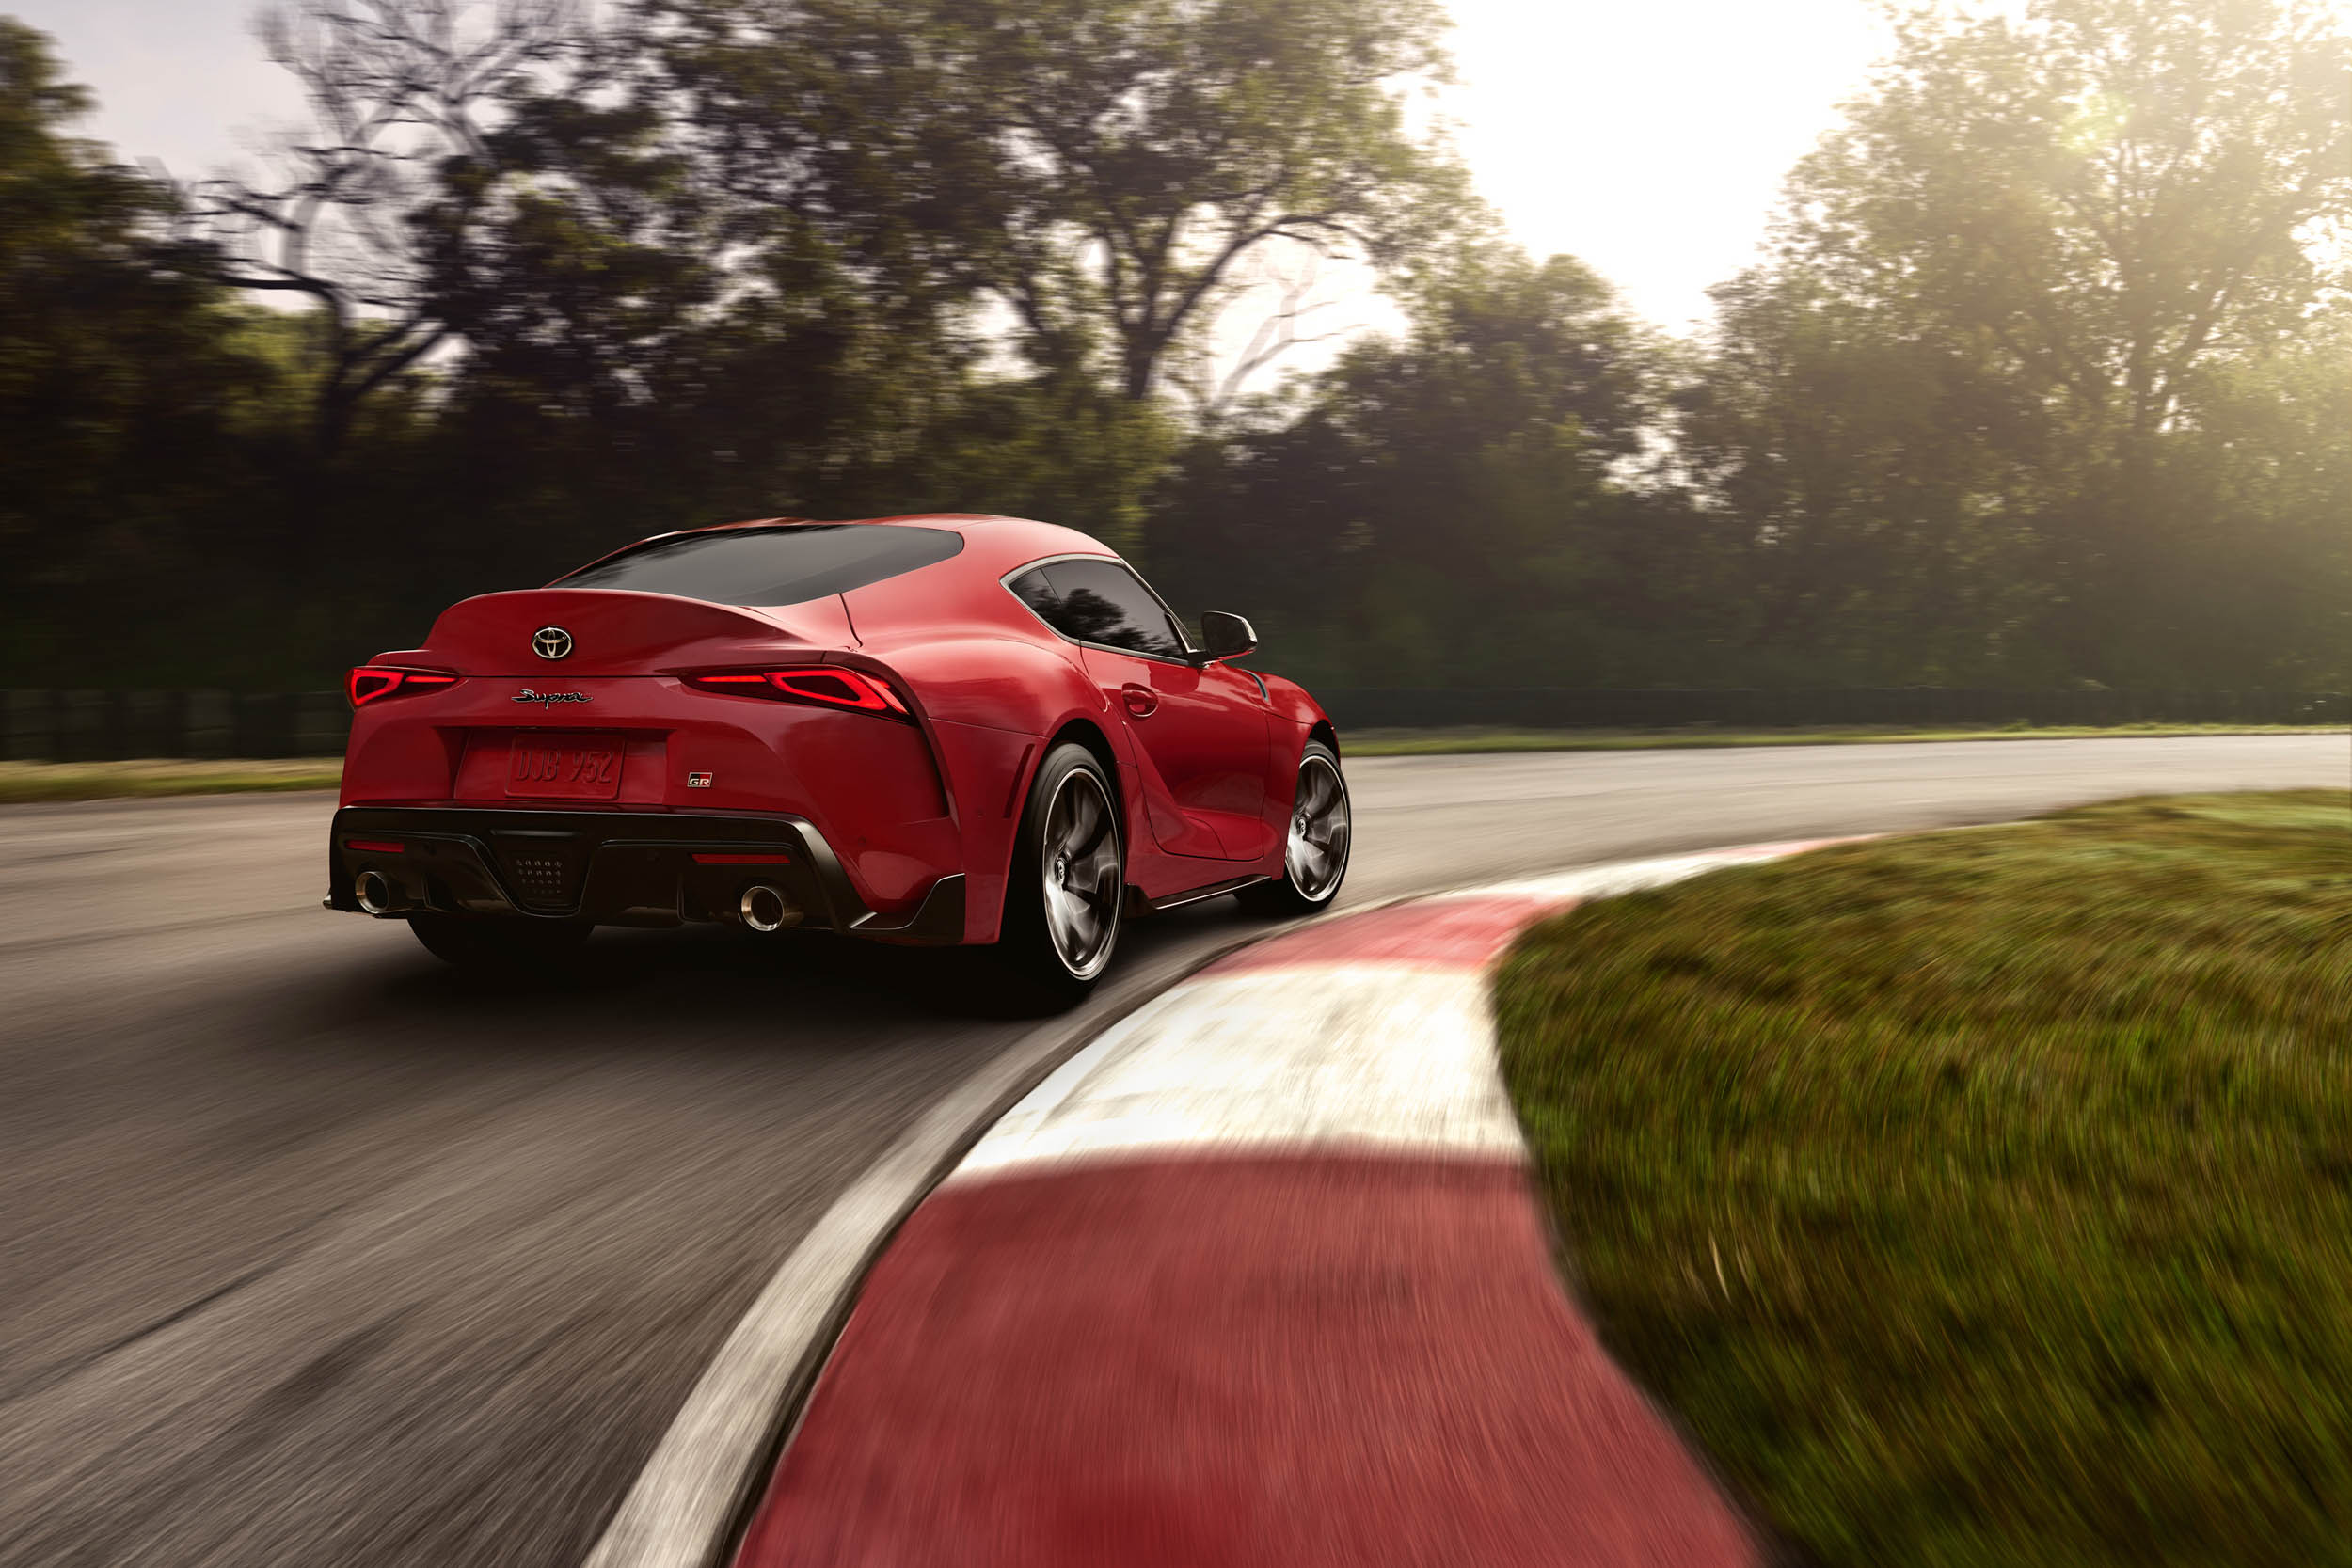 2020 Toyota Supra driving rear 3/4